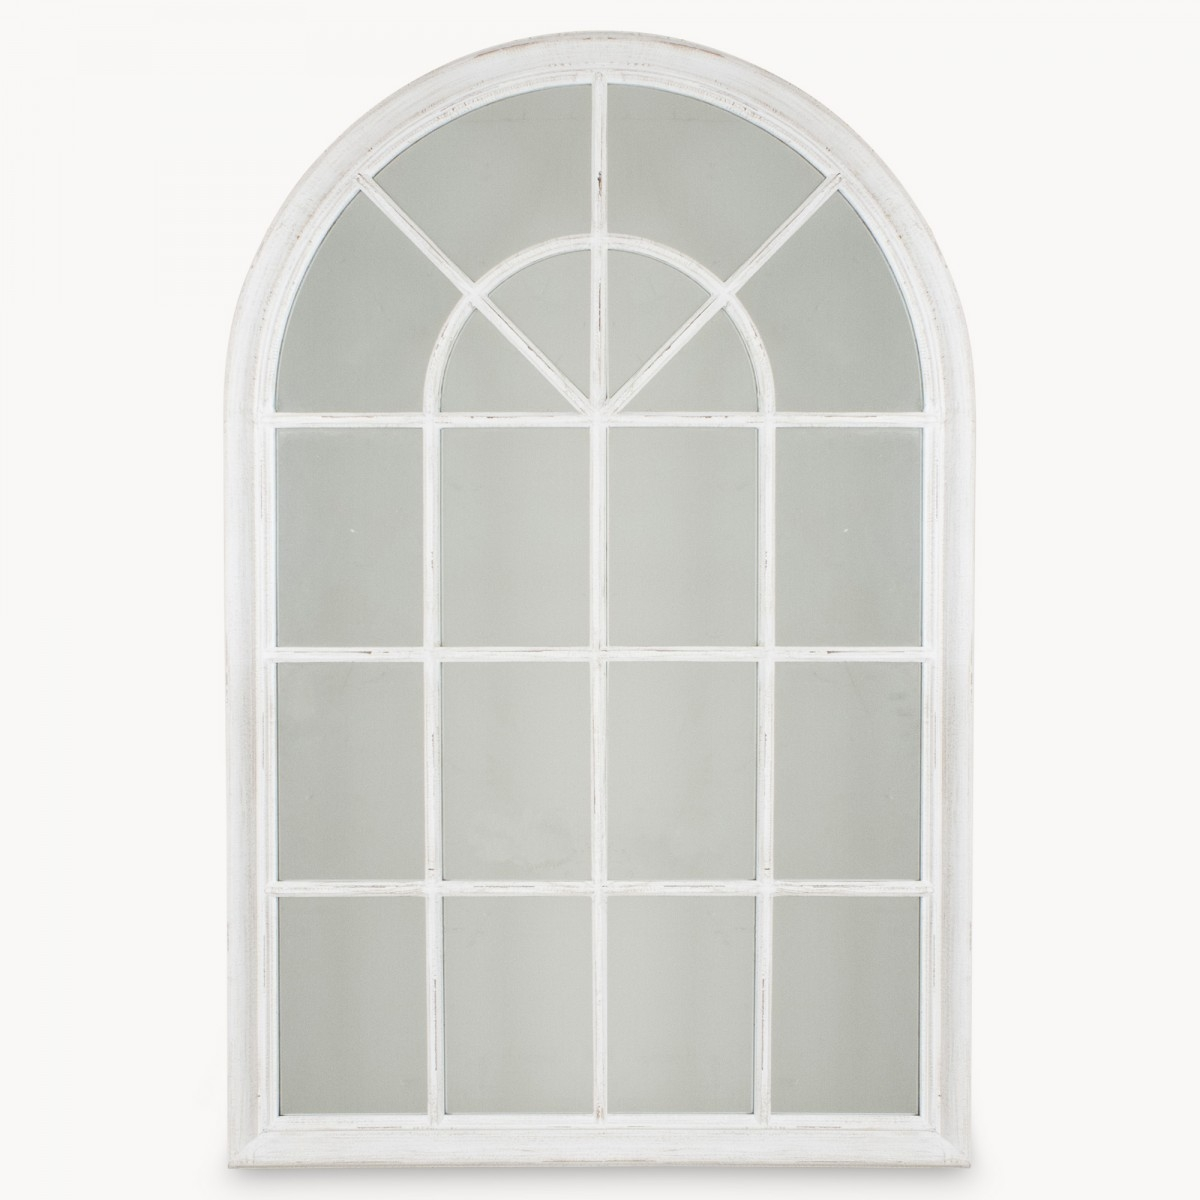 Ideas Design For Arched Window Mirror 19755 Regarding White Arched Window Mirror (Image 9 of 15)